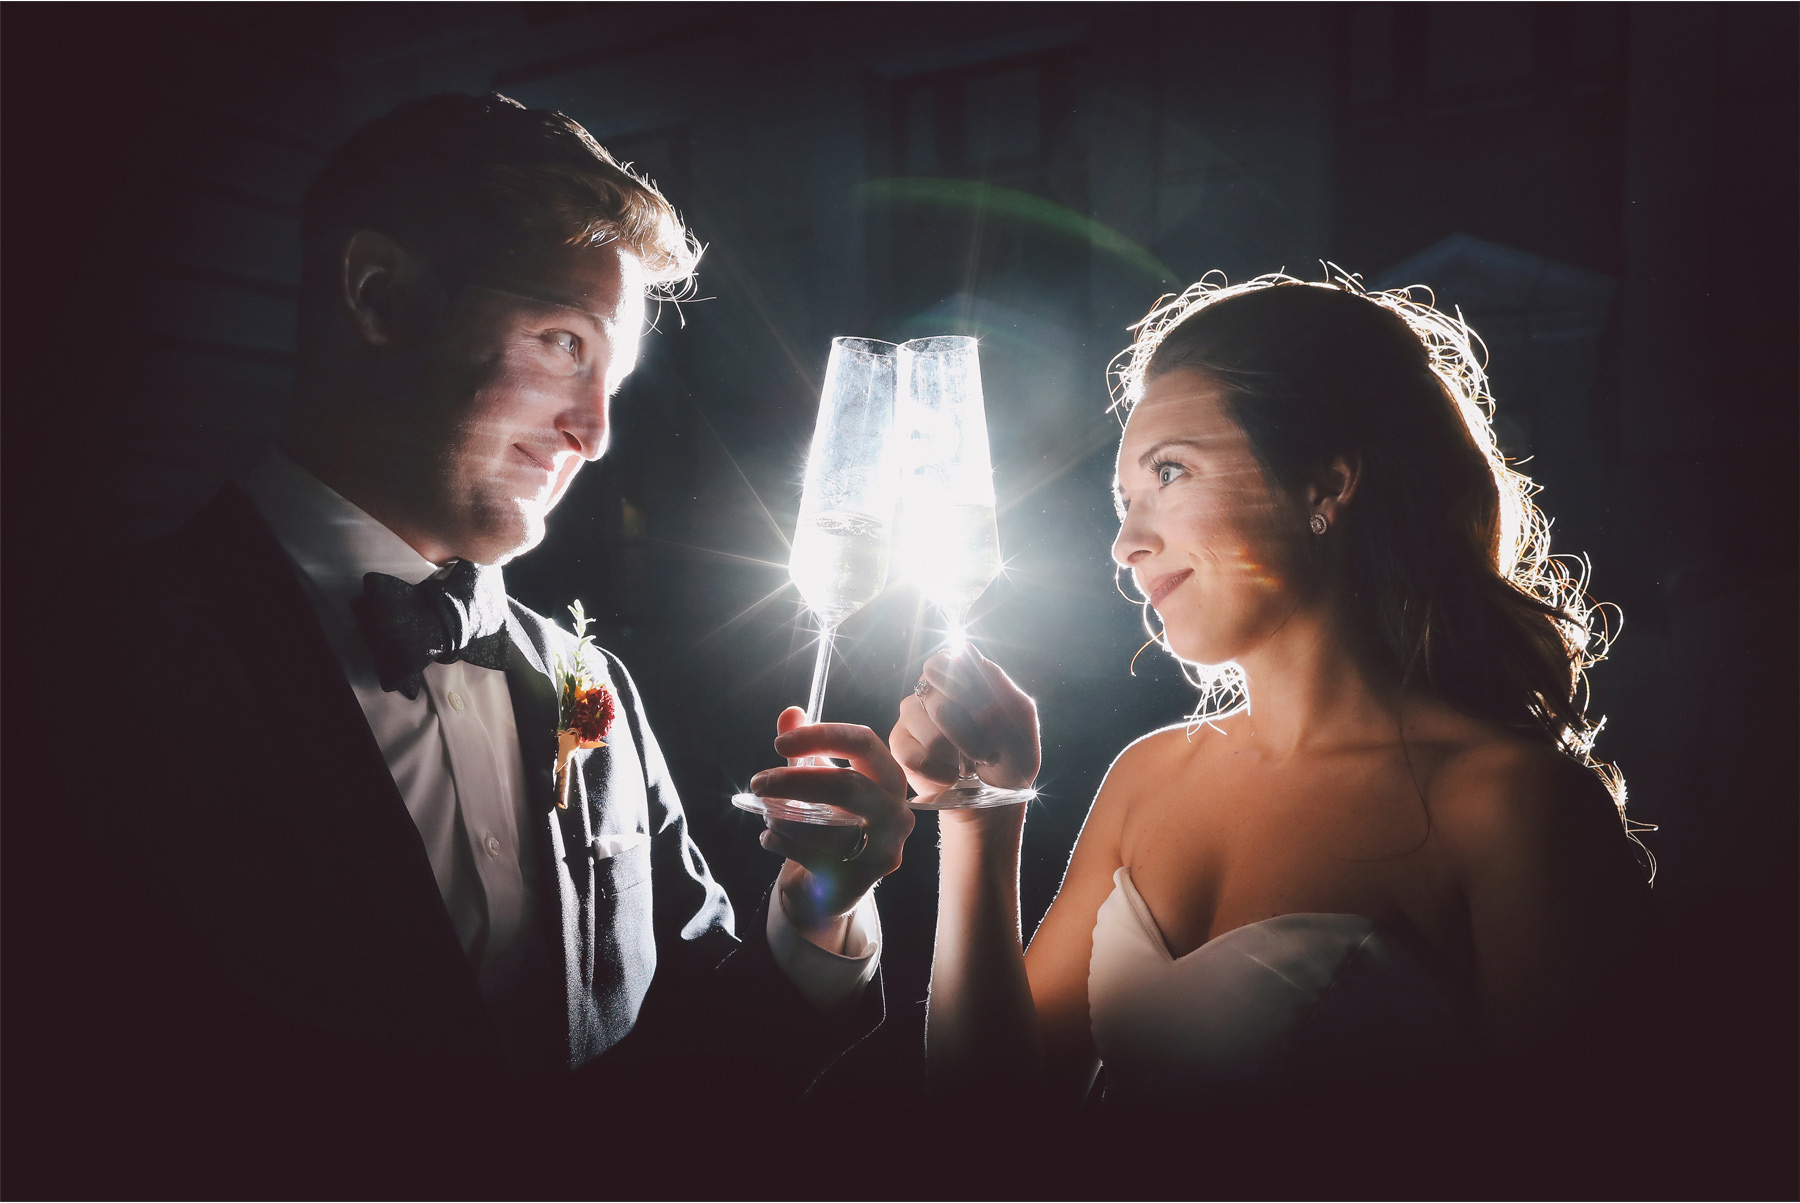 22-Kansas-City-Missouri-Destination-Wedding-Photography-by-Vick-Photography-Downtown-Night-Photography-Champagne-Carly-and-Kenny.jpg